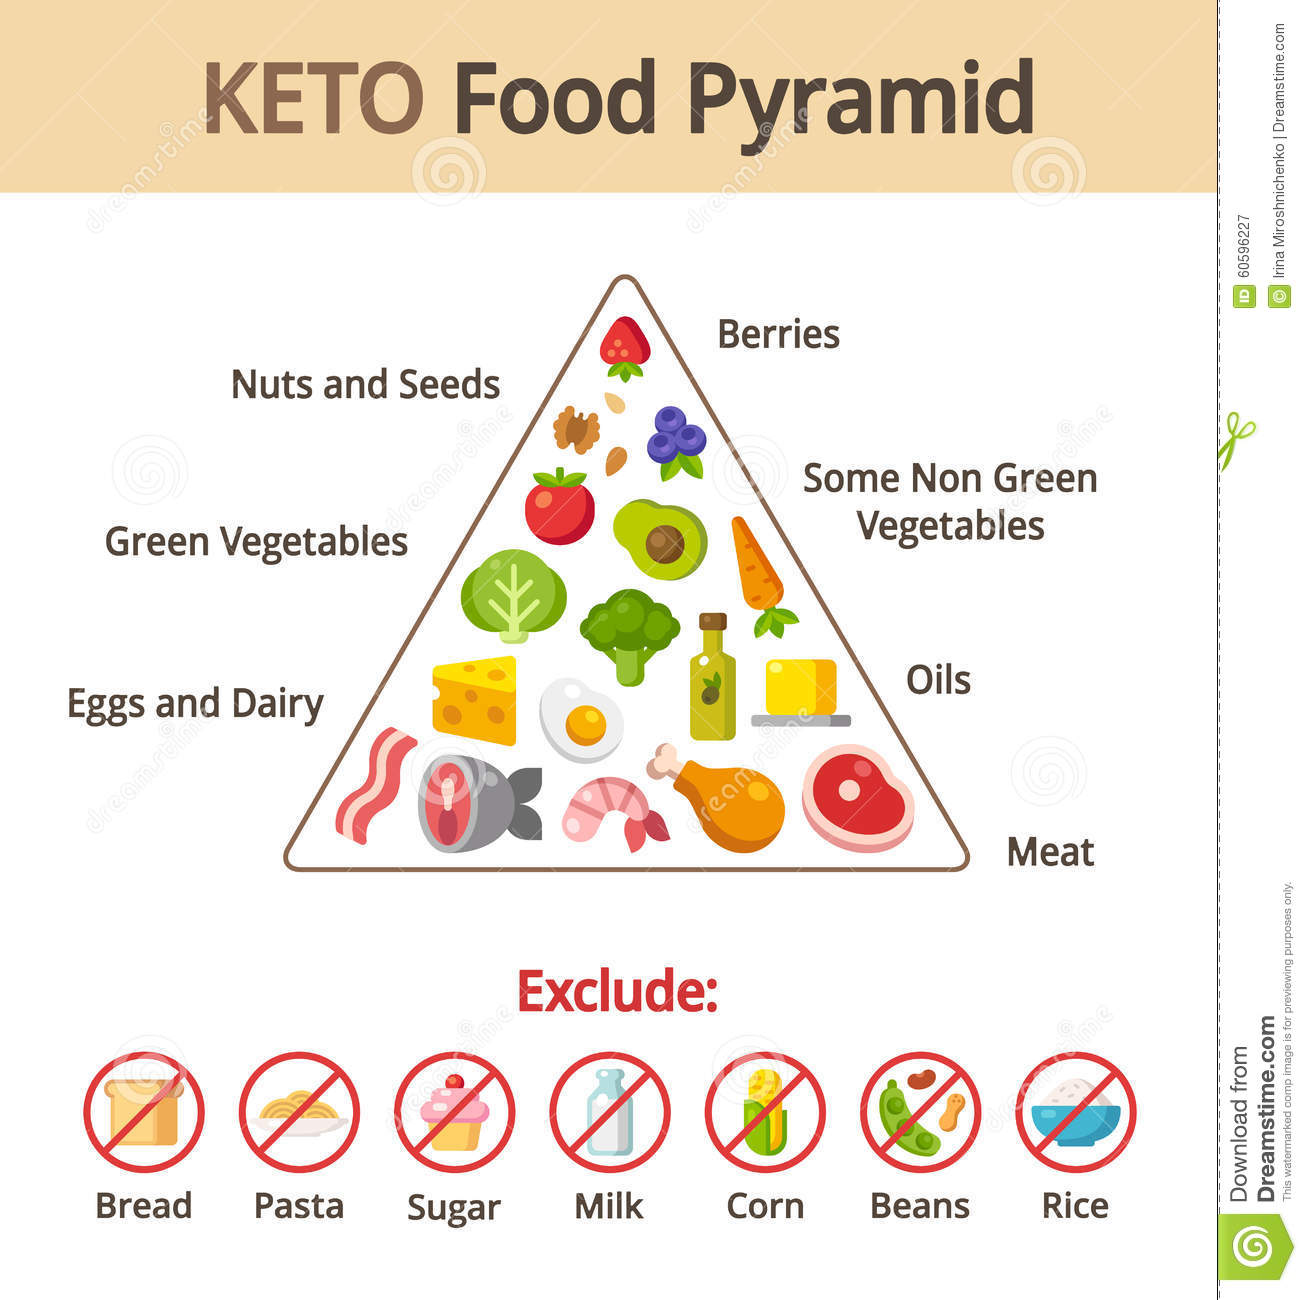 Keto food pyramid stock vector. Illustration of keto - 60596227